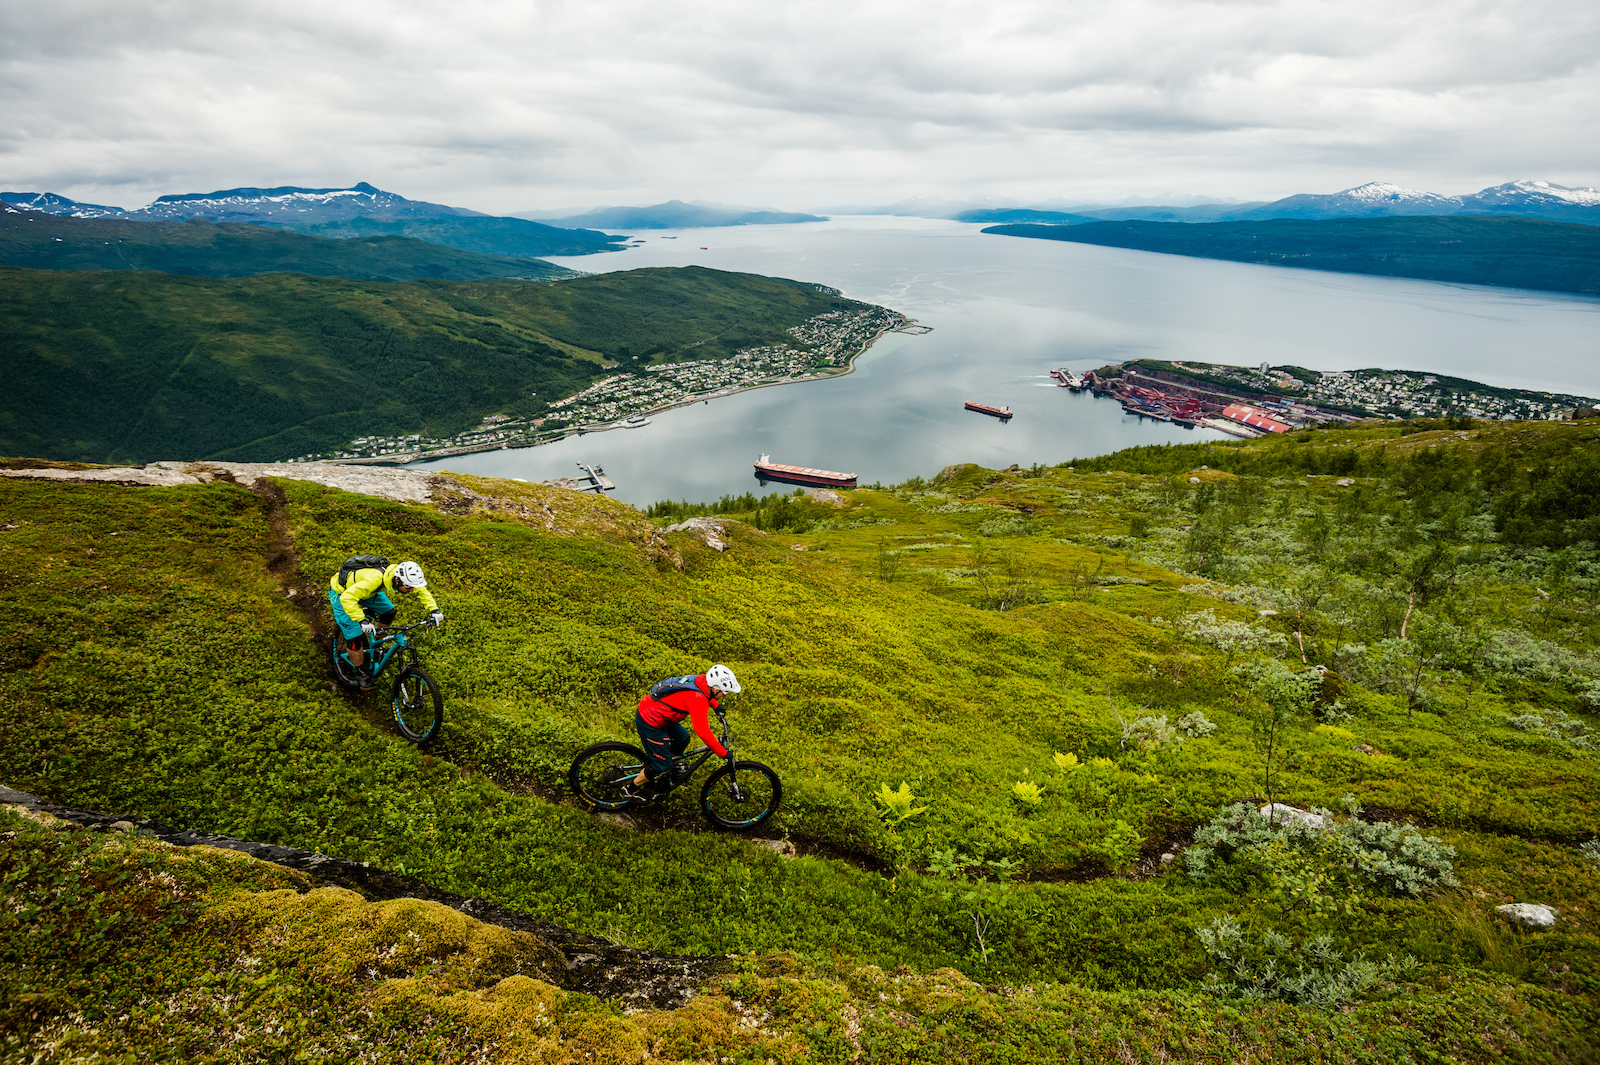 Joey Schulser and Mikael af Ekenstam riding in Narvik Norway.